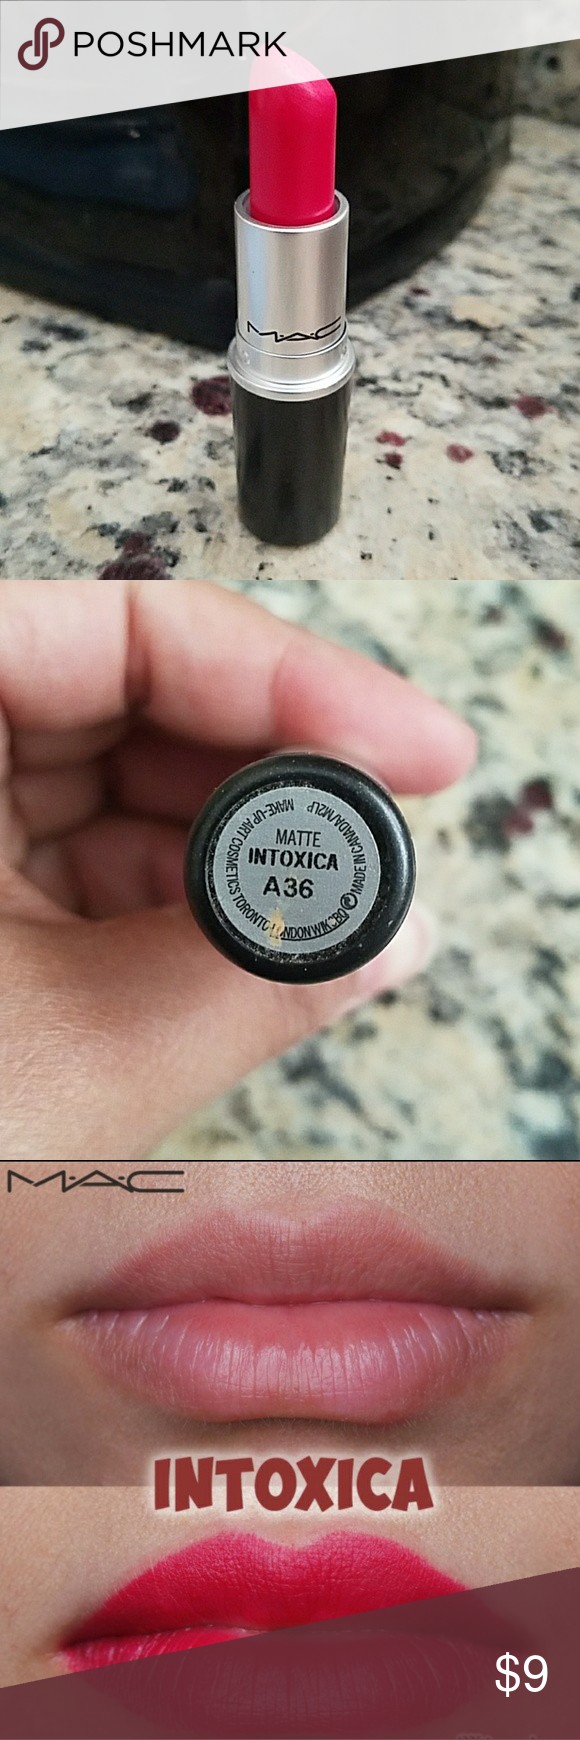 MAC lipstick in Intoxica (Matte) | Mac